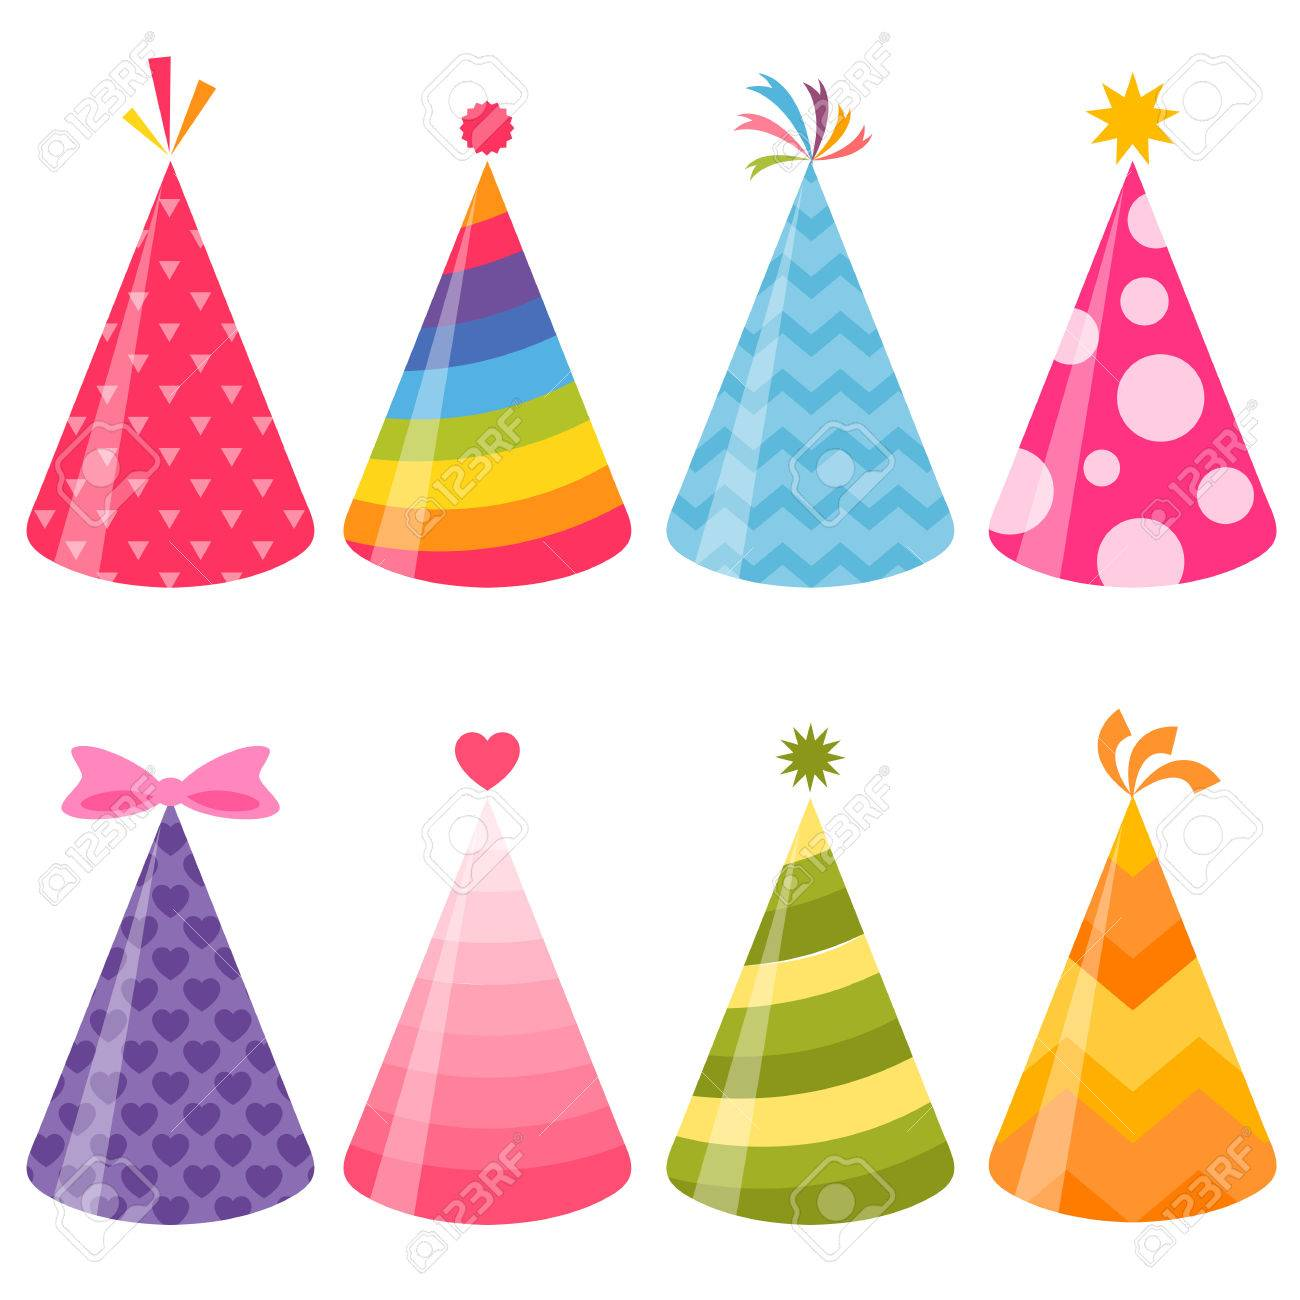 birthday party hats set royalty free cliparts vectors and stock rh 123rf com party hat vector template party hat vector free